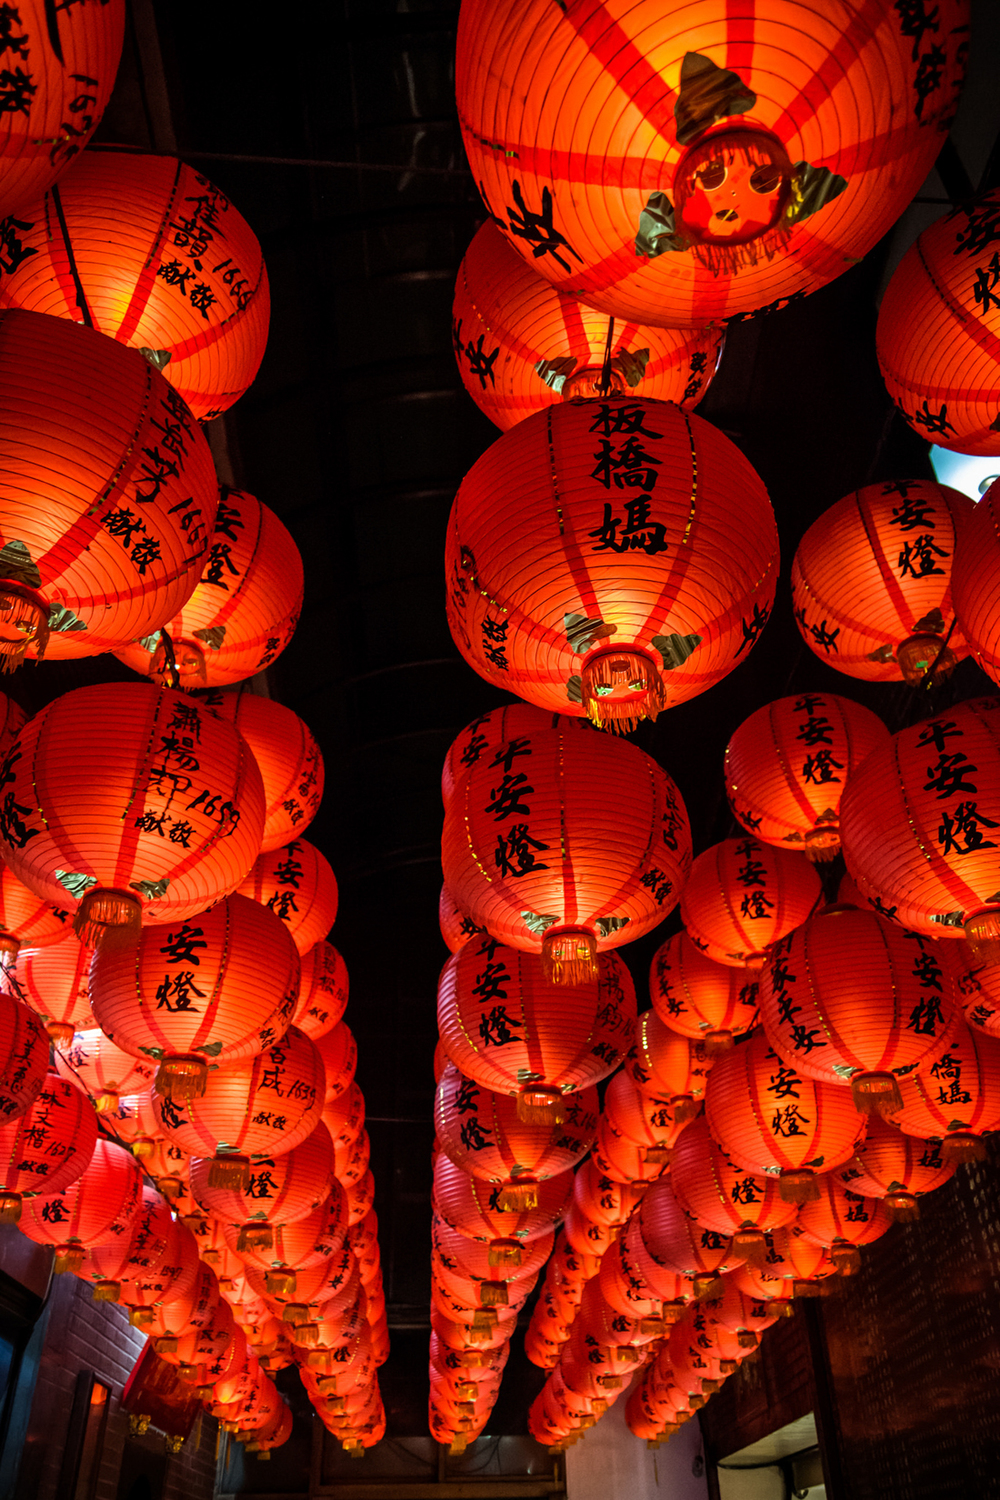 Rows-of-Lanterns.jpg